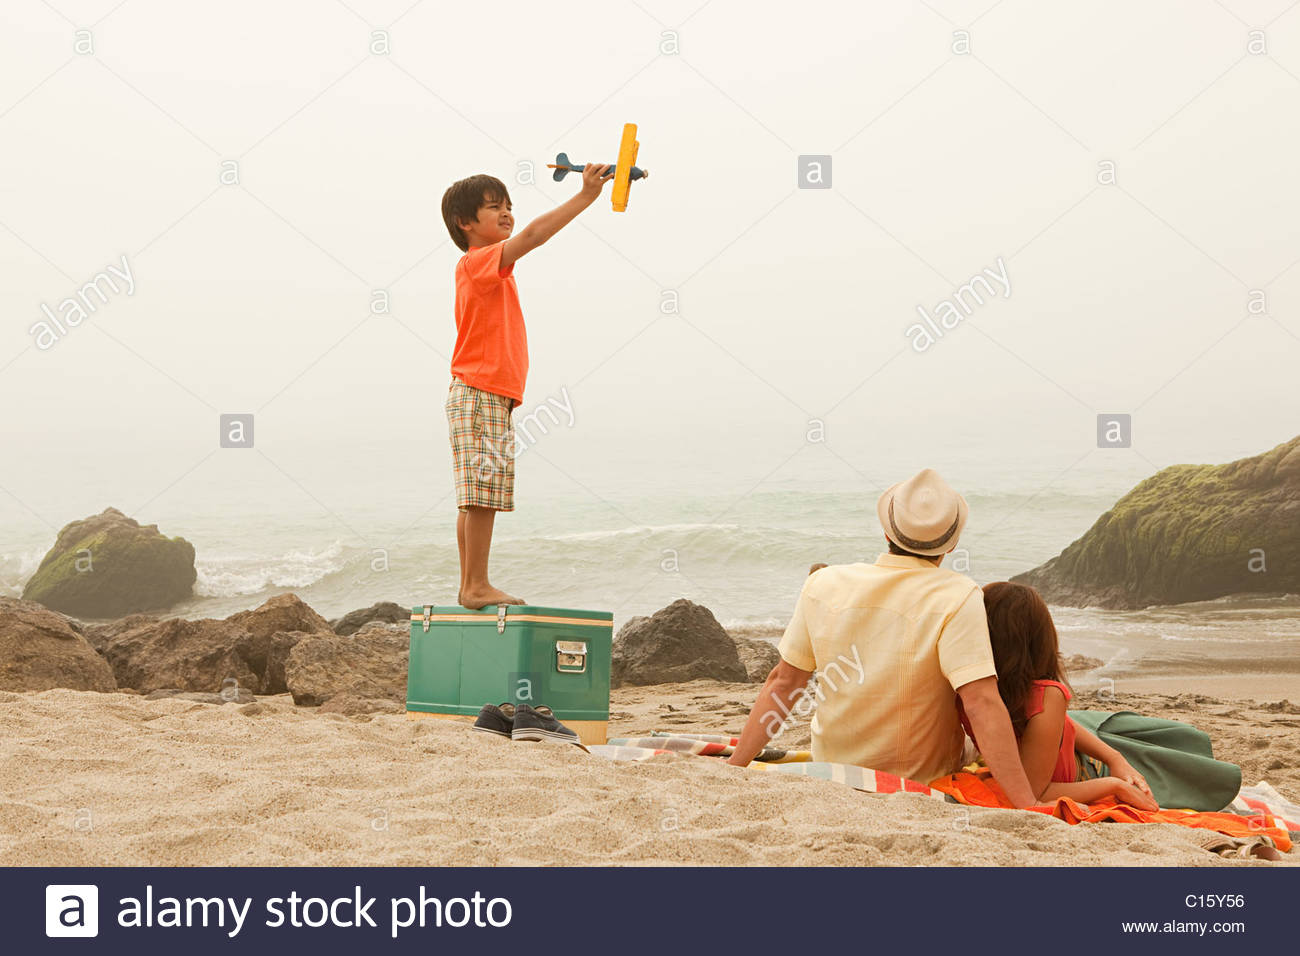 Family on beach, boy playing with toy plane Photo Stock